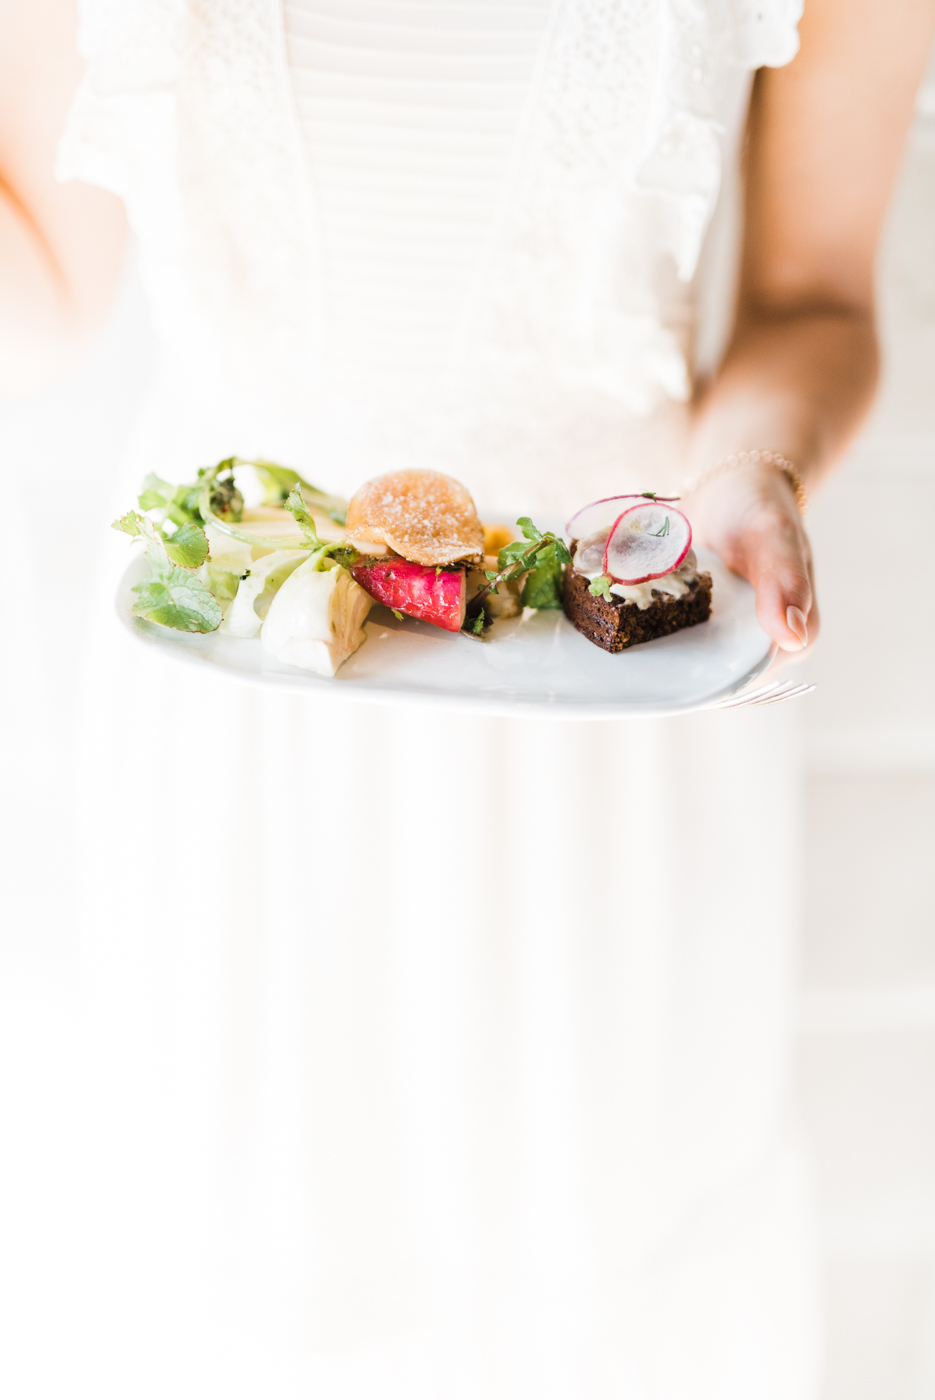 Haley Richter Photography - Branding food photography images for catering companies and restaurants.